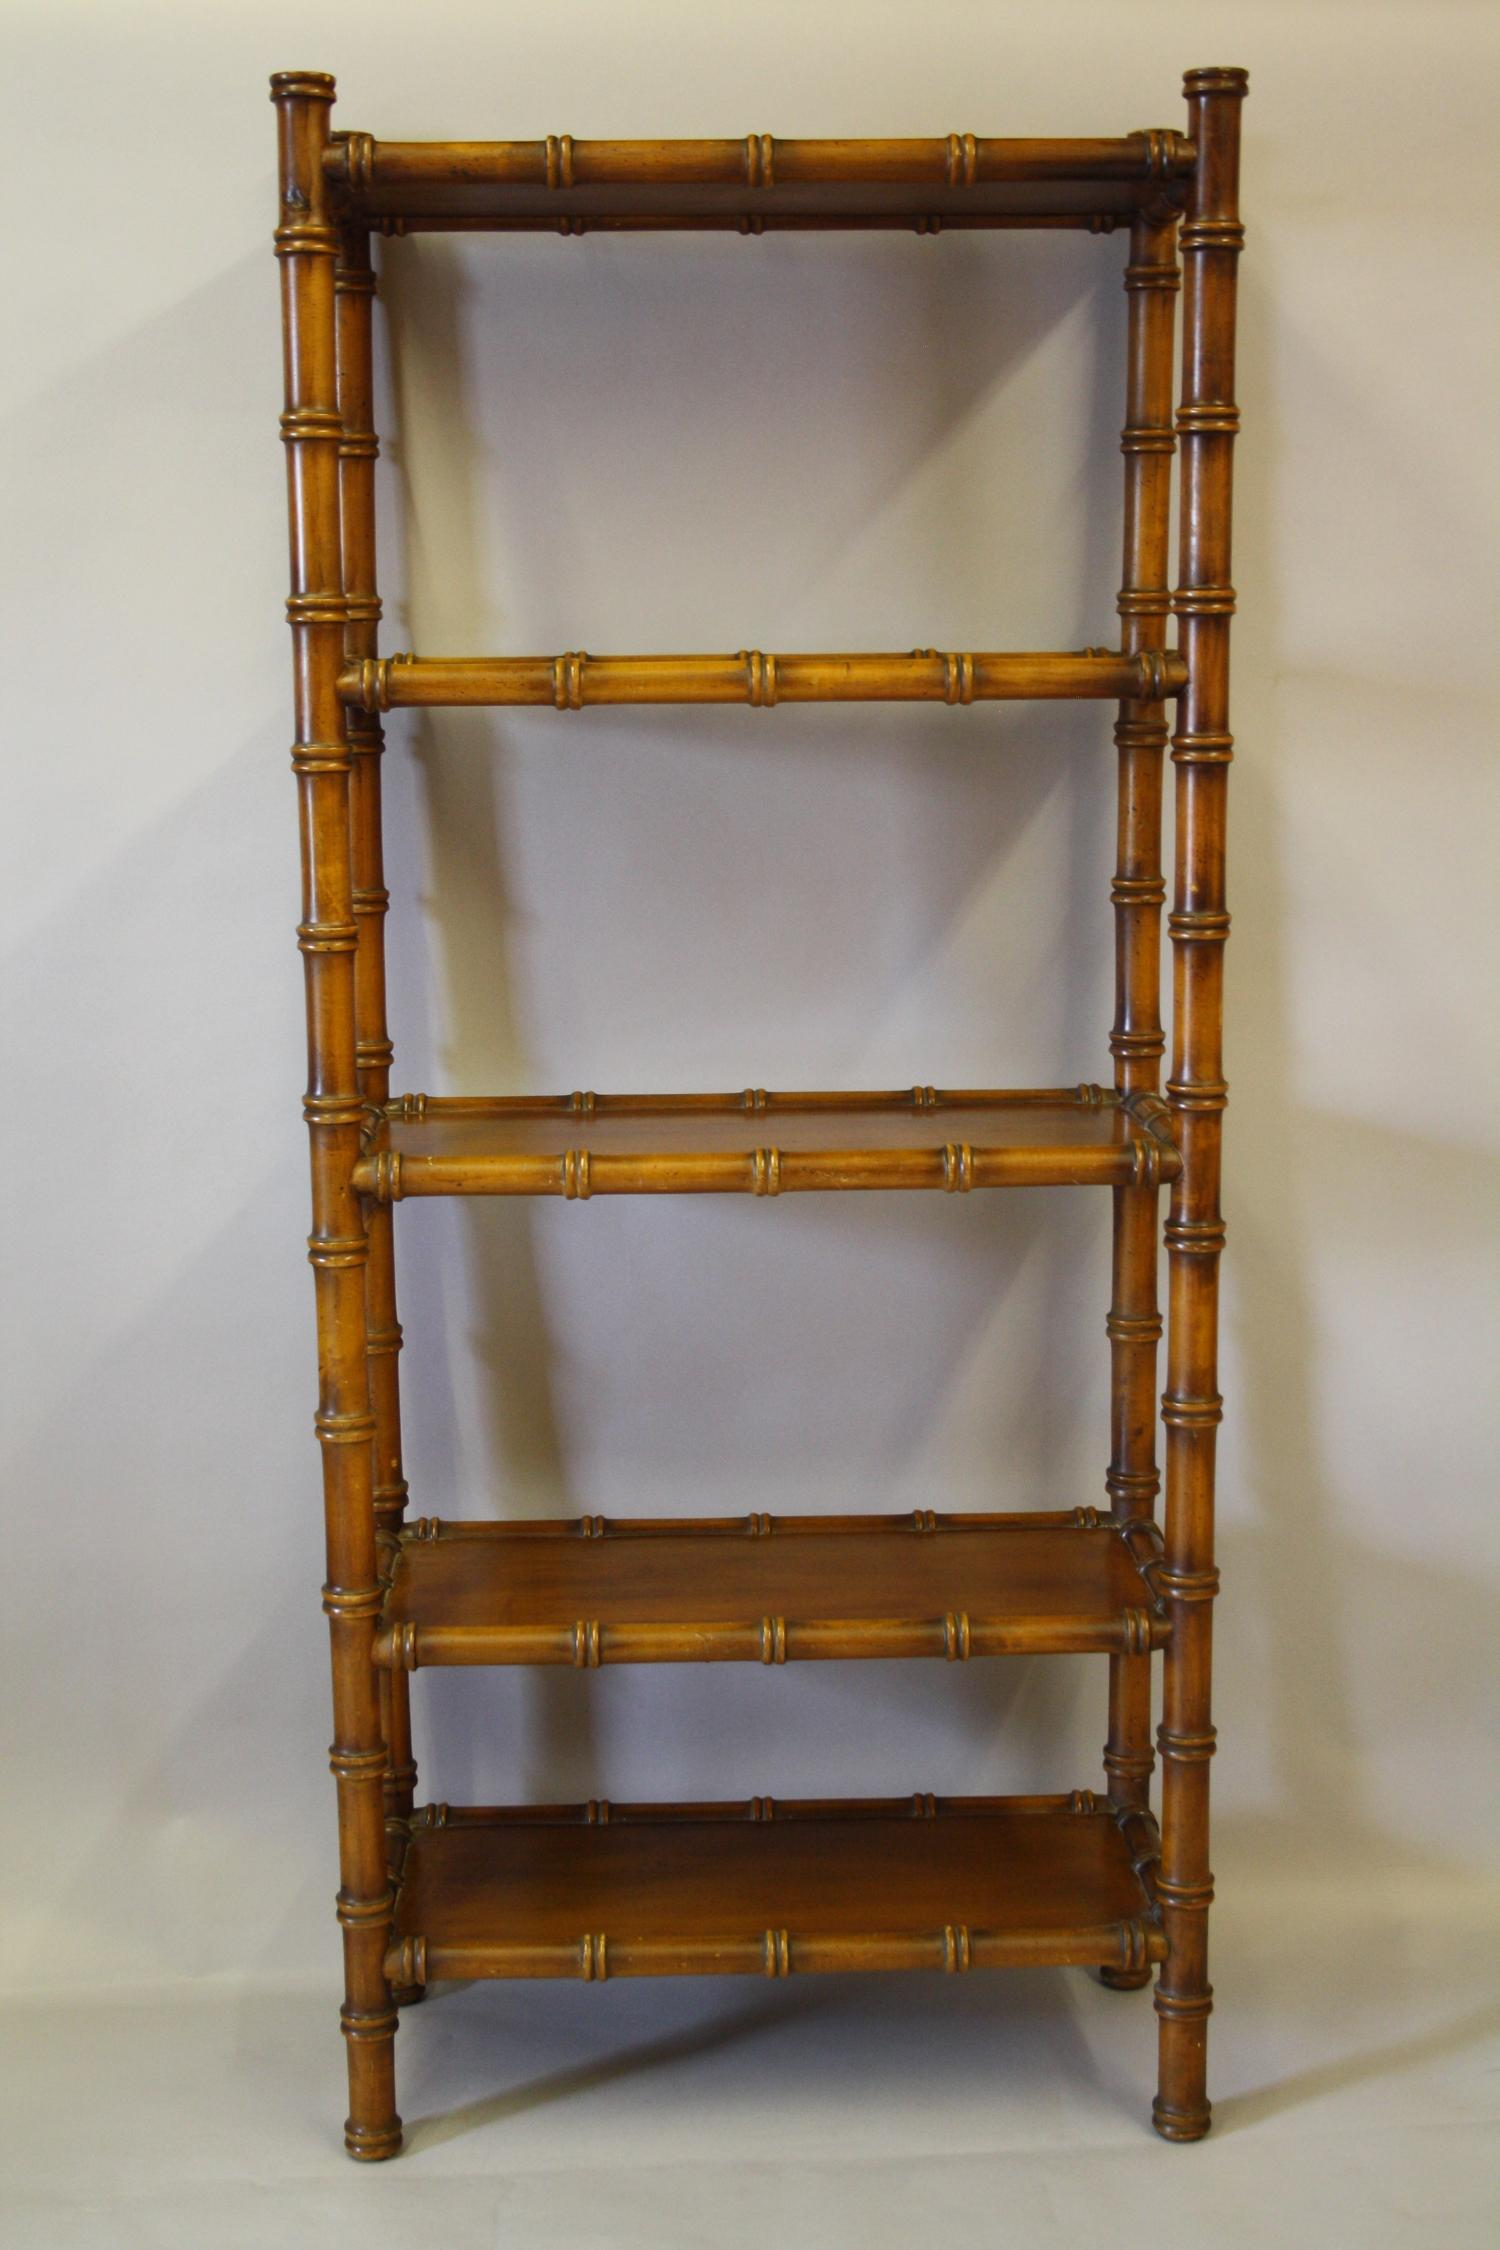 Valenti faux bamboo wooden shelves